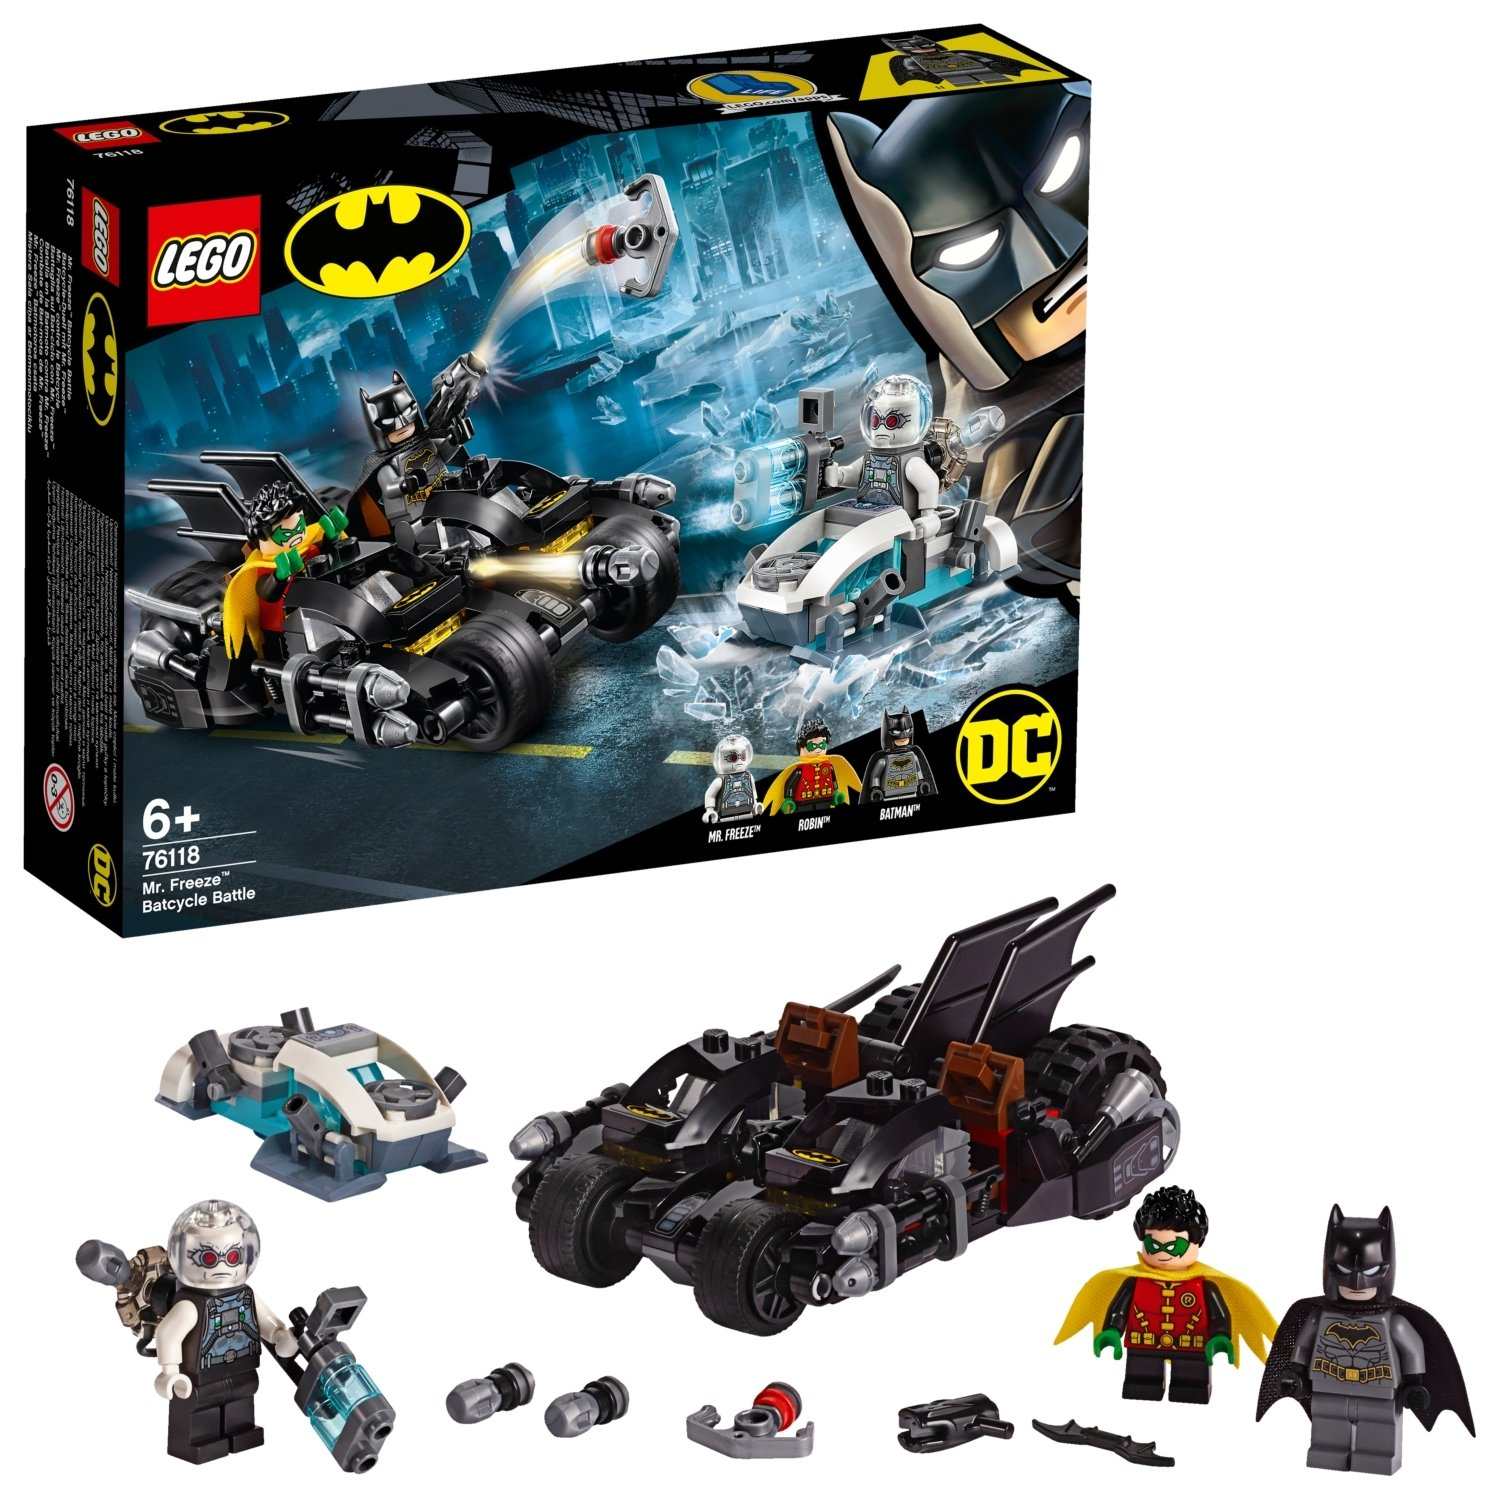 LEGO DC Batman Mr. Freeze Batcycle Battle Toy Bike - 76118